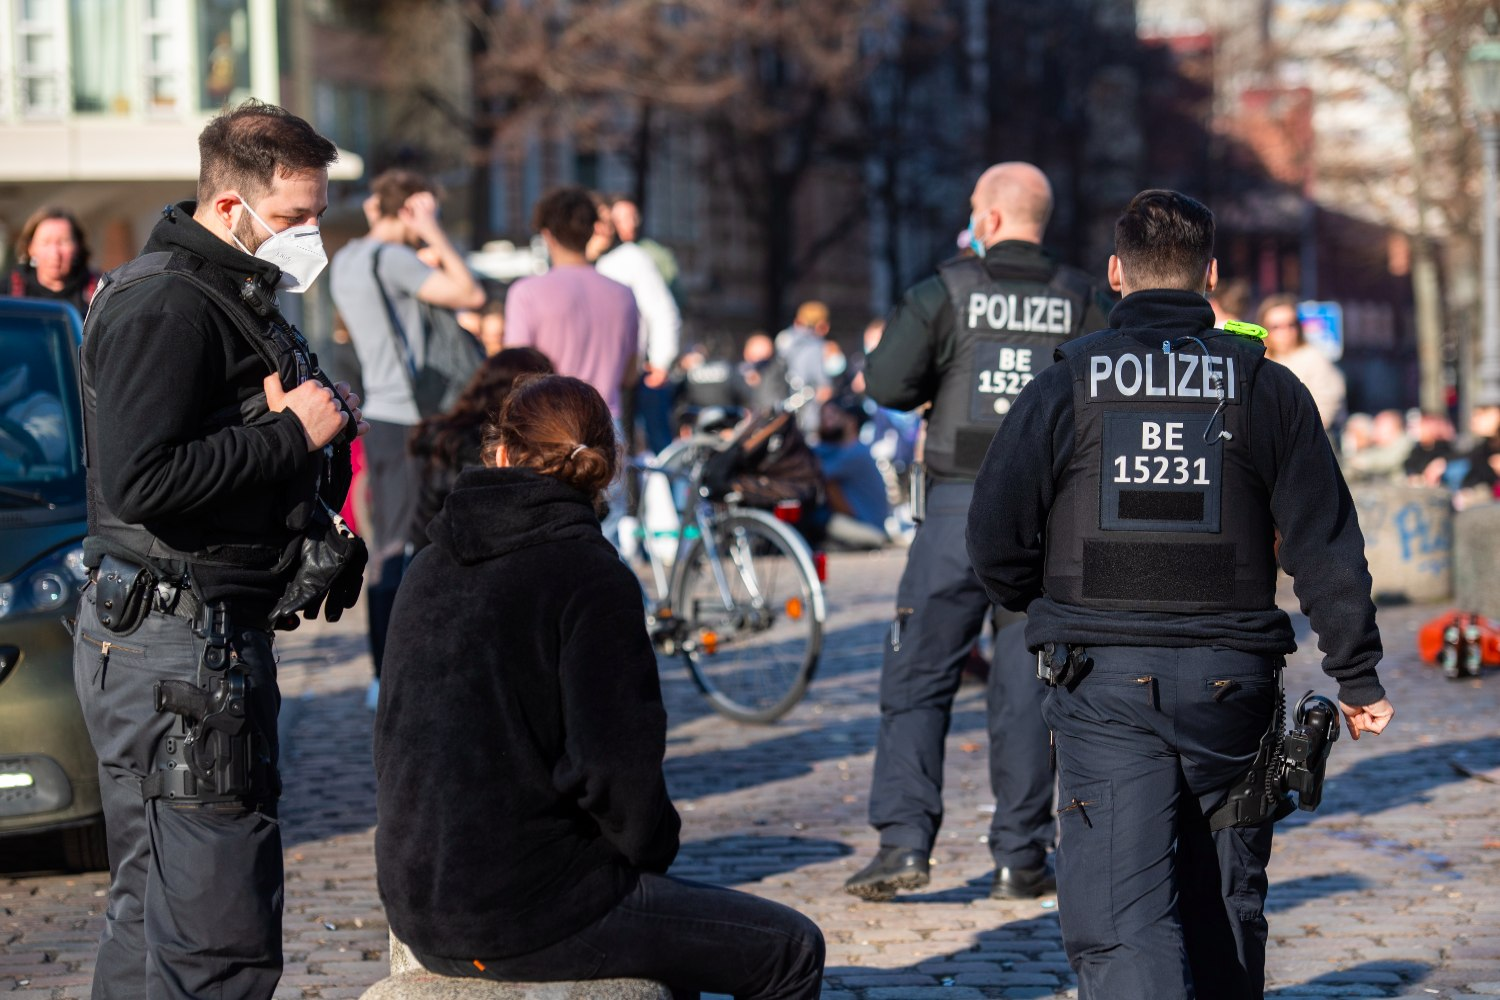 Germany is entering Covid-19 third wave, warns health expert